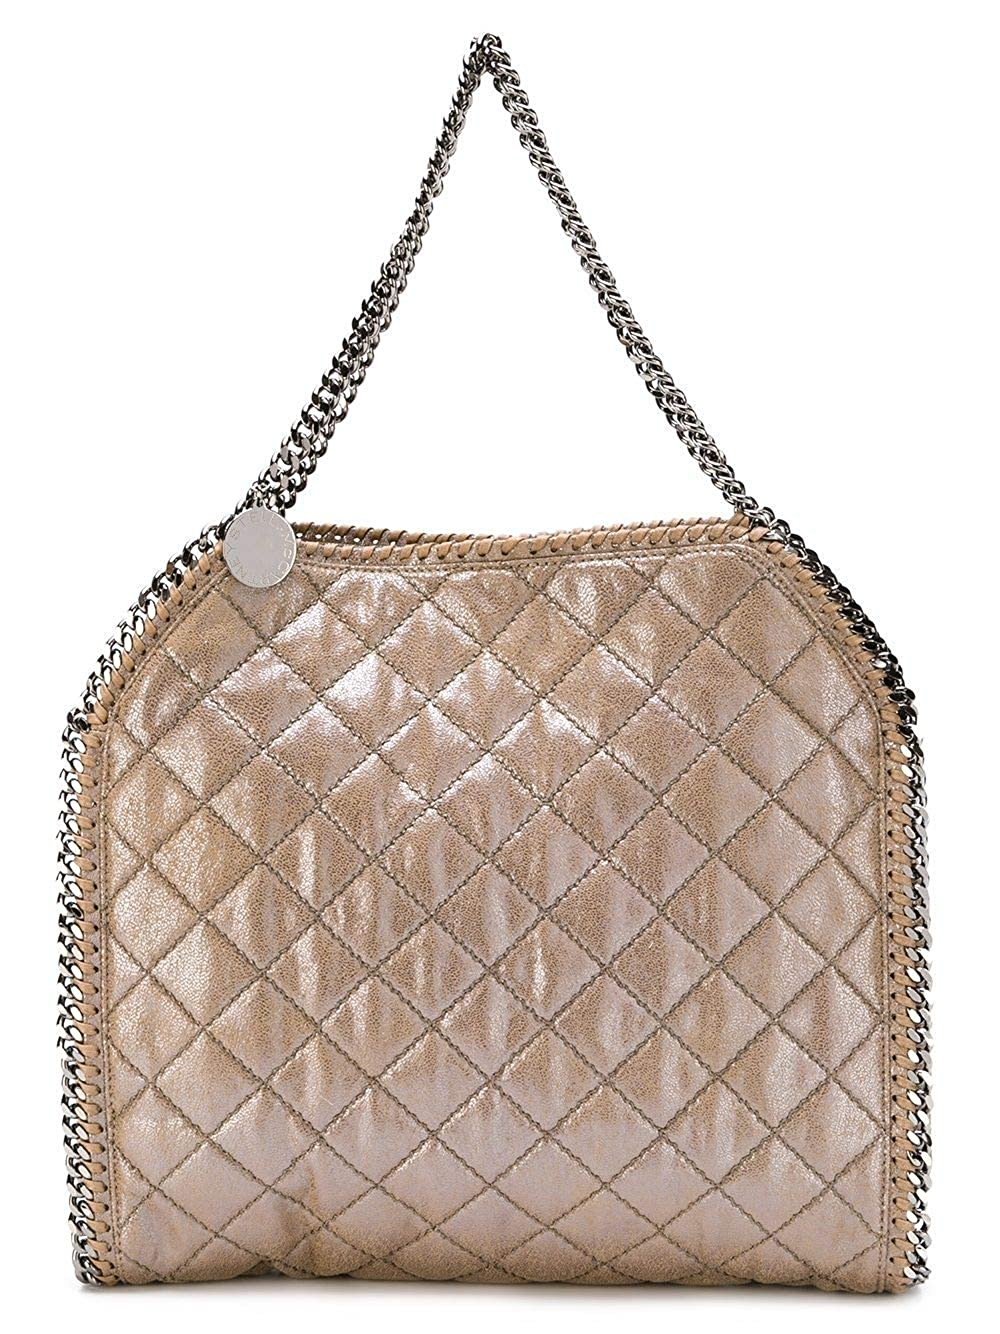 2ca9e8d0fd Amazon.com: Stella McCartney Falabella 261063W9643 Redwood Quilted Tote:  Shoes